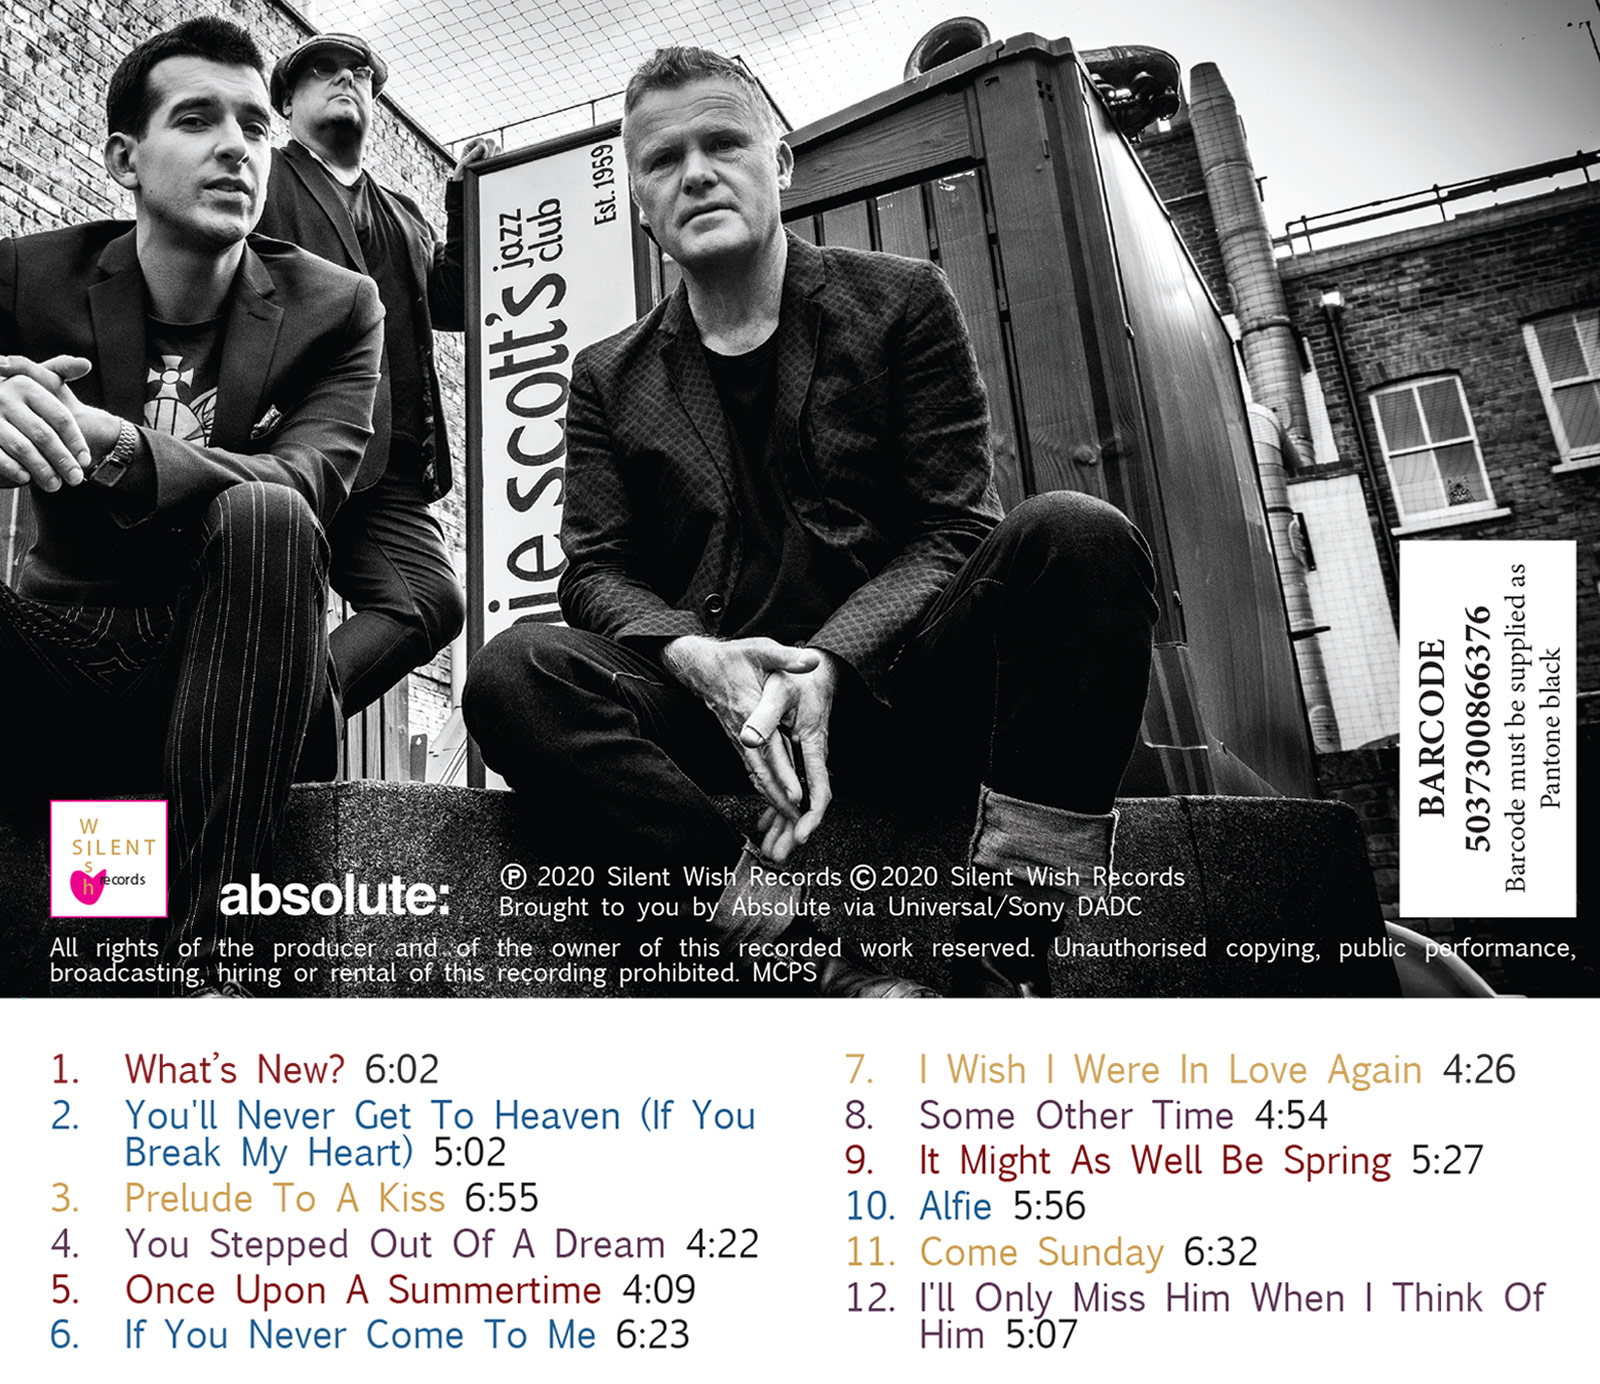 What's New - back cover